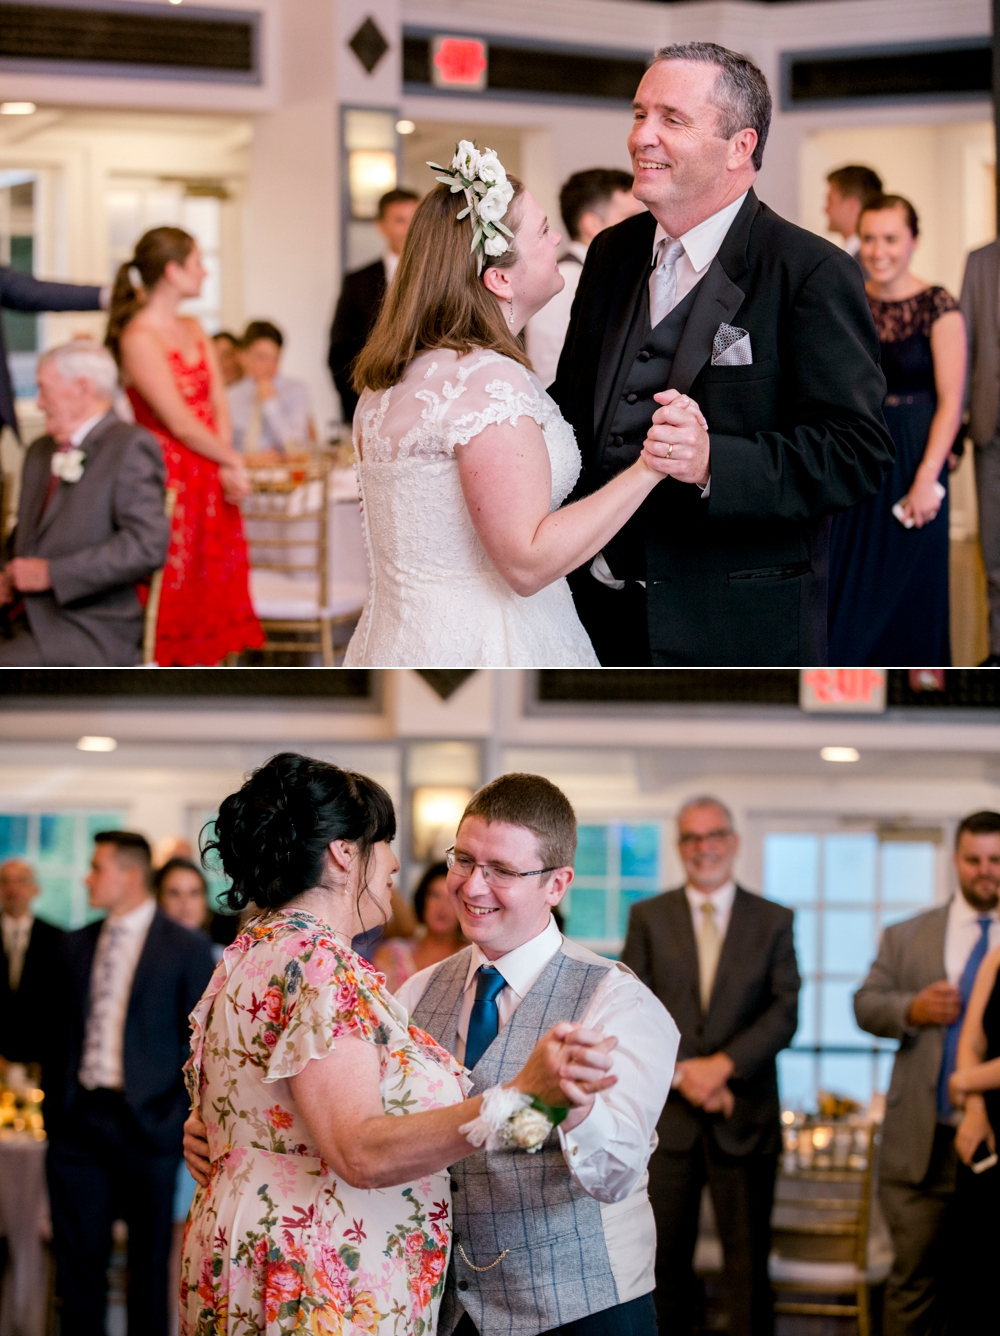 SomerbyJonesPhotography__RiverClub_RiverClubWedding_SouthShoreWedding_0047.jpg